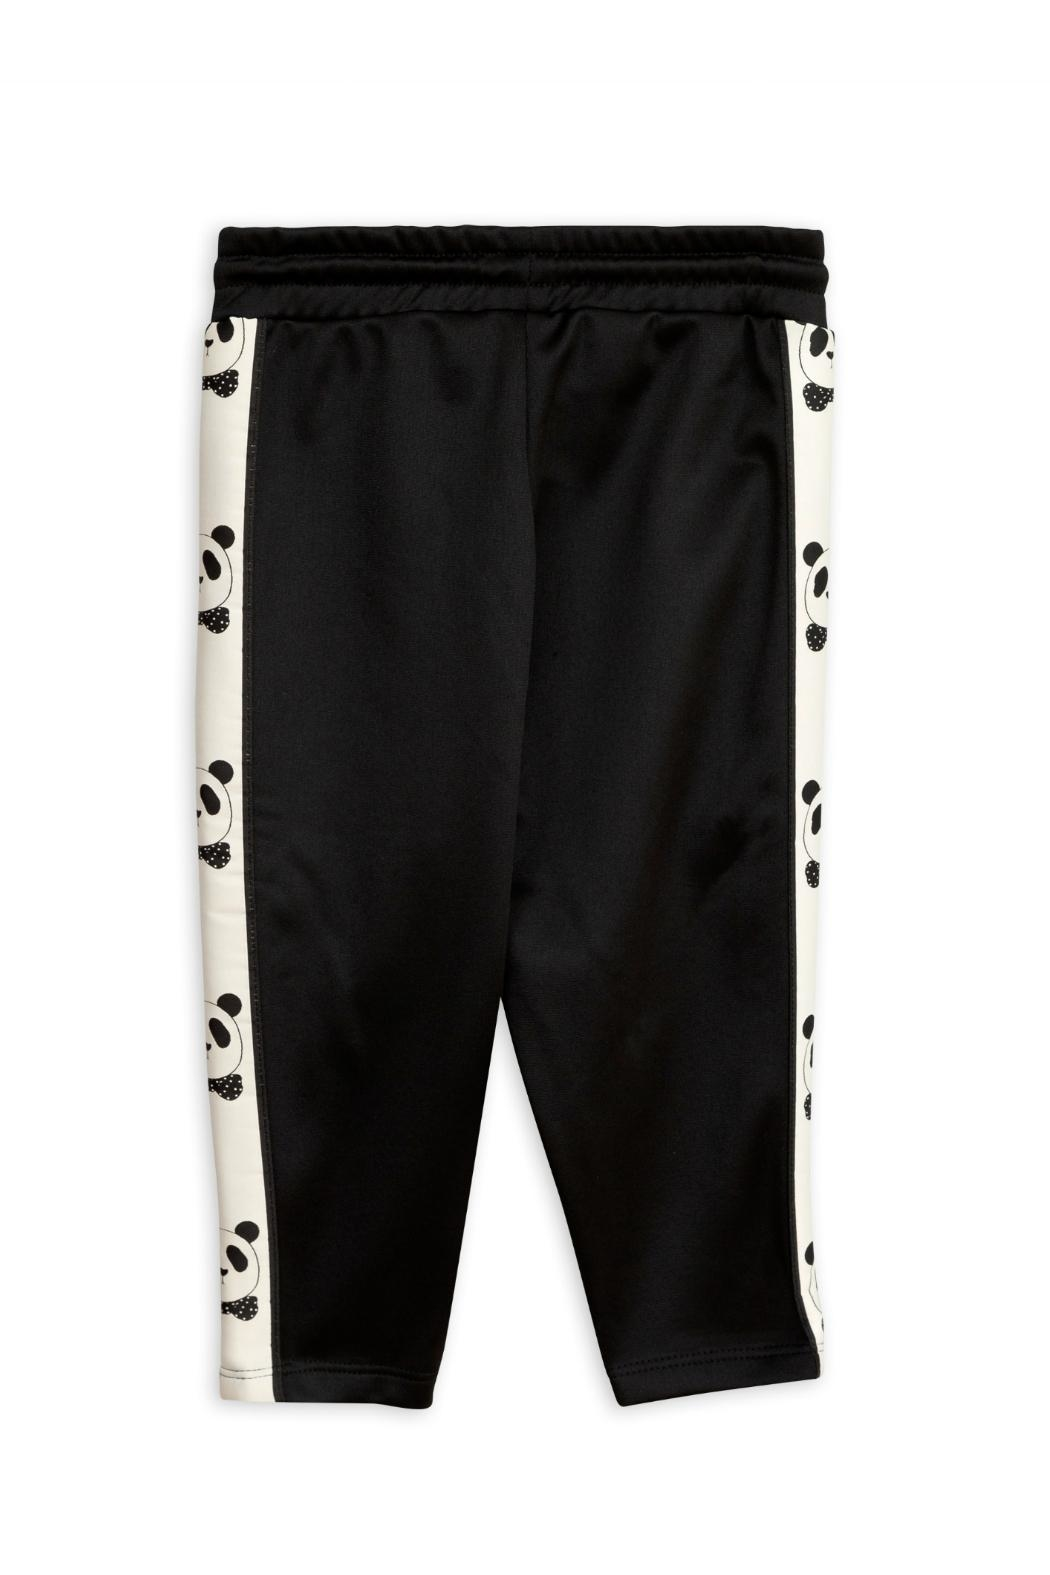 Mini Rodini Black Panda Pants - Side Cropped Image